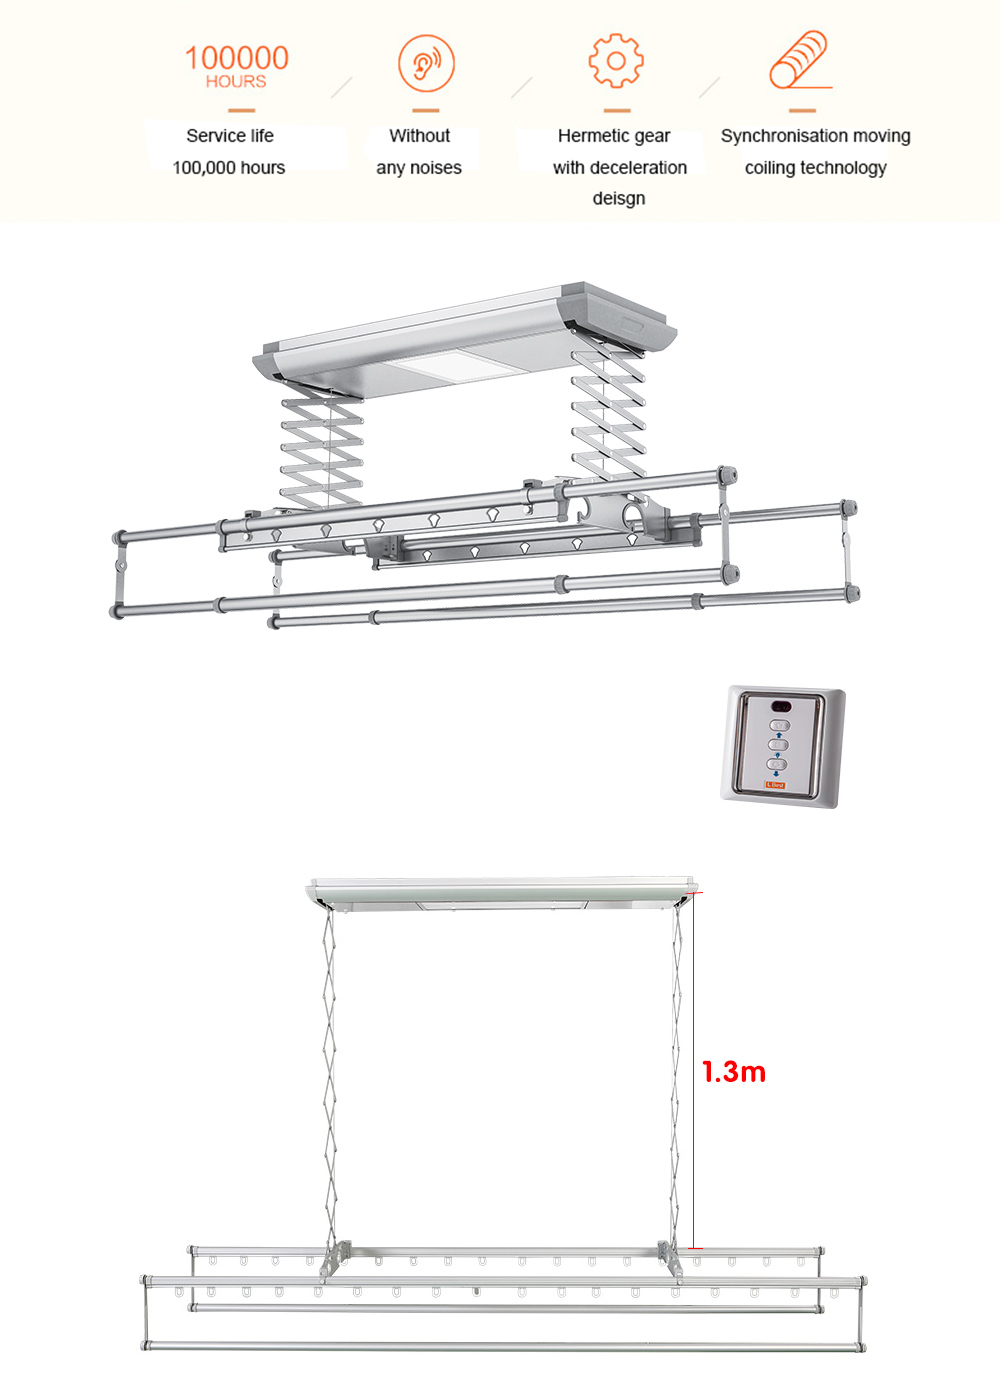 ceiling laundry rack lifting height is 1.3 m